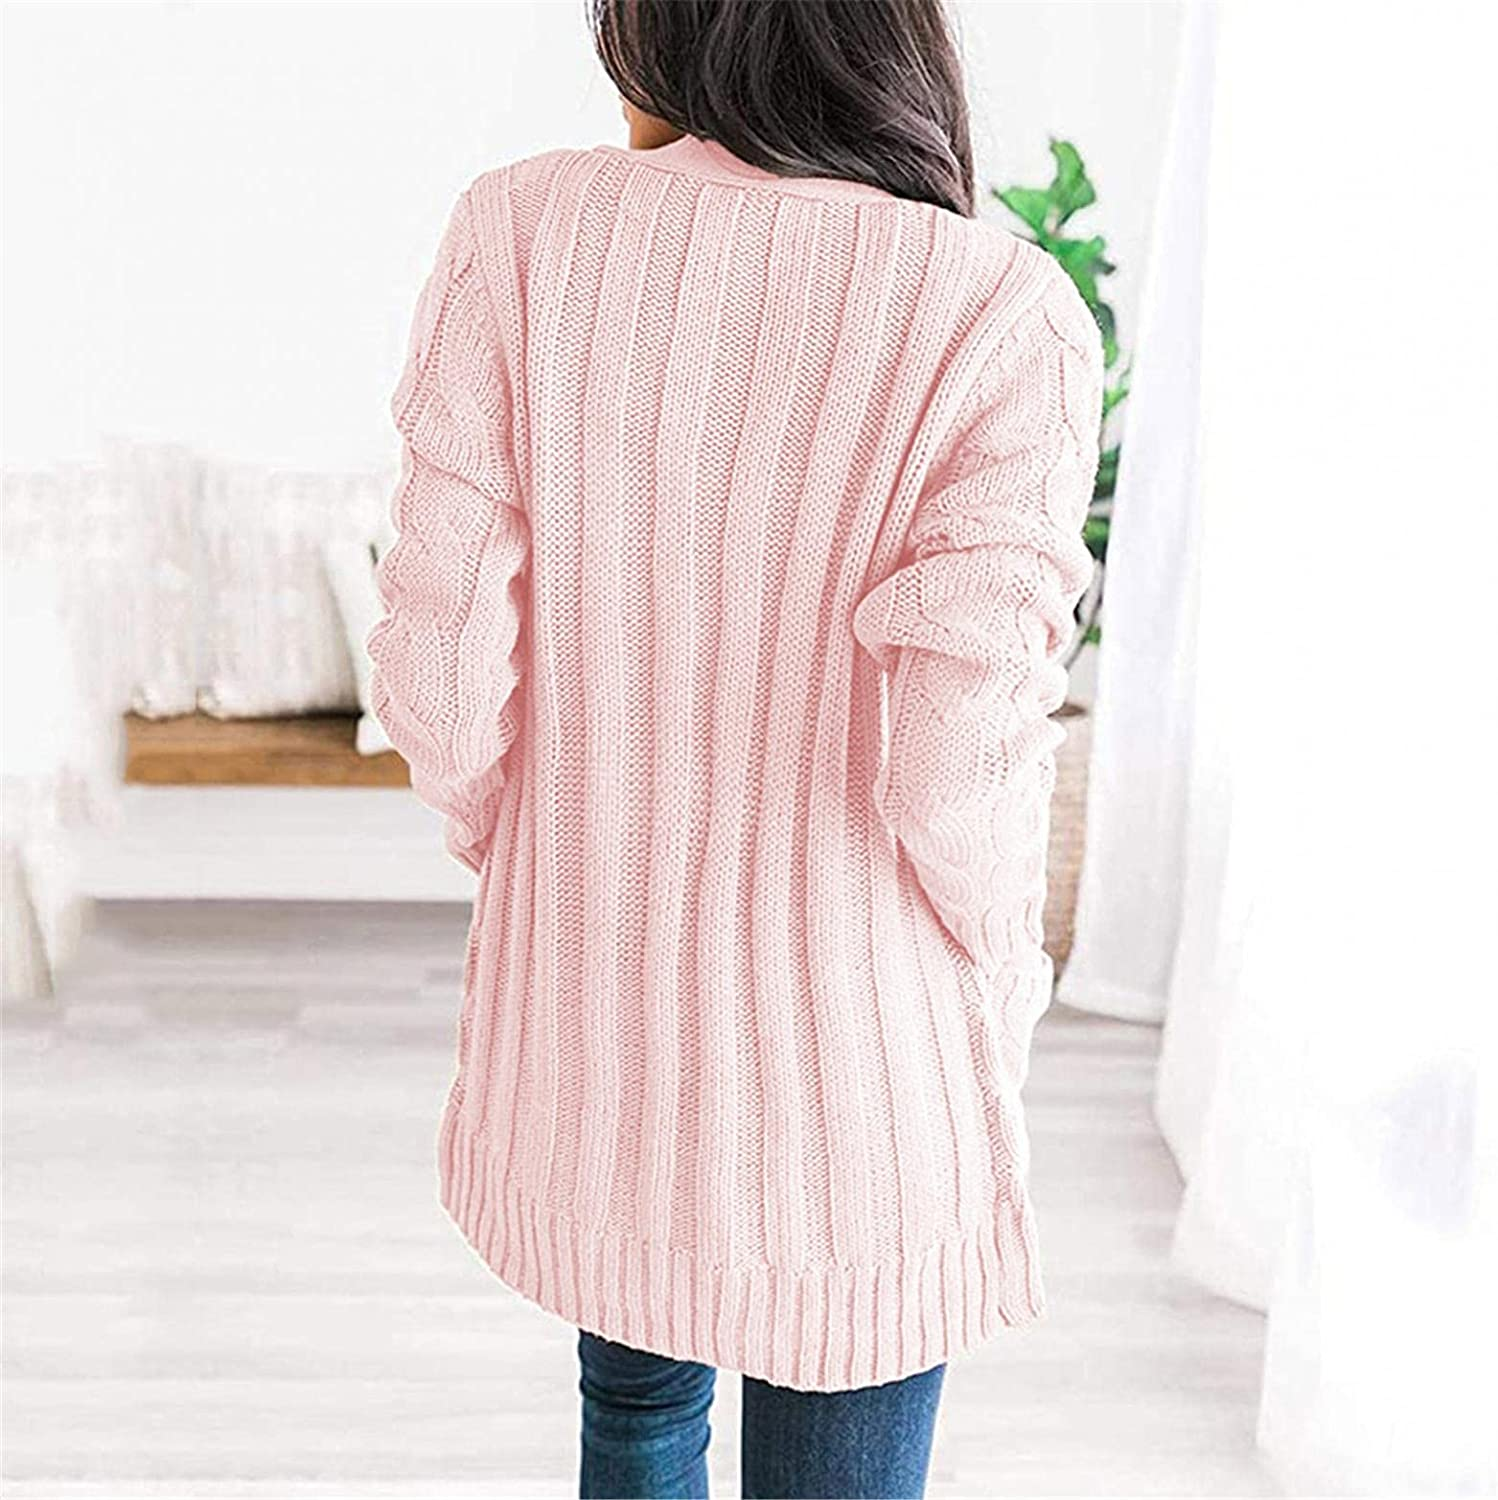 AODONG Cardigan for Women Casual Long Sleeves Cable Knit Sweater Open Front Cardigan Button Loose Outerwear